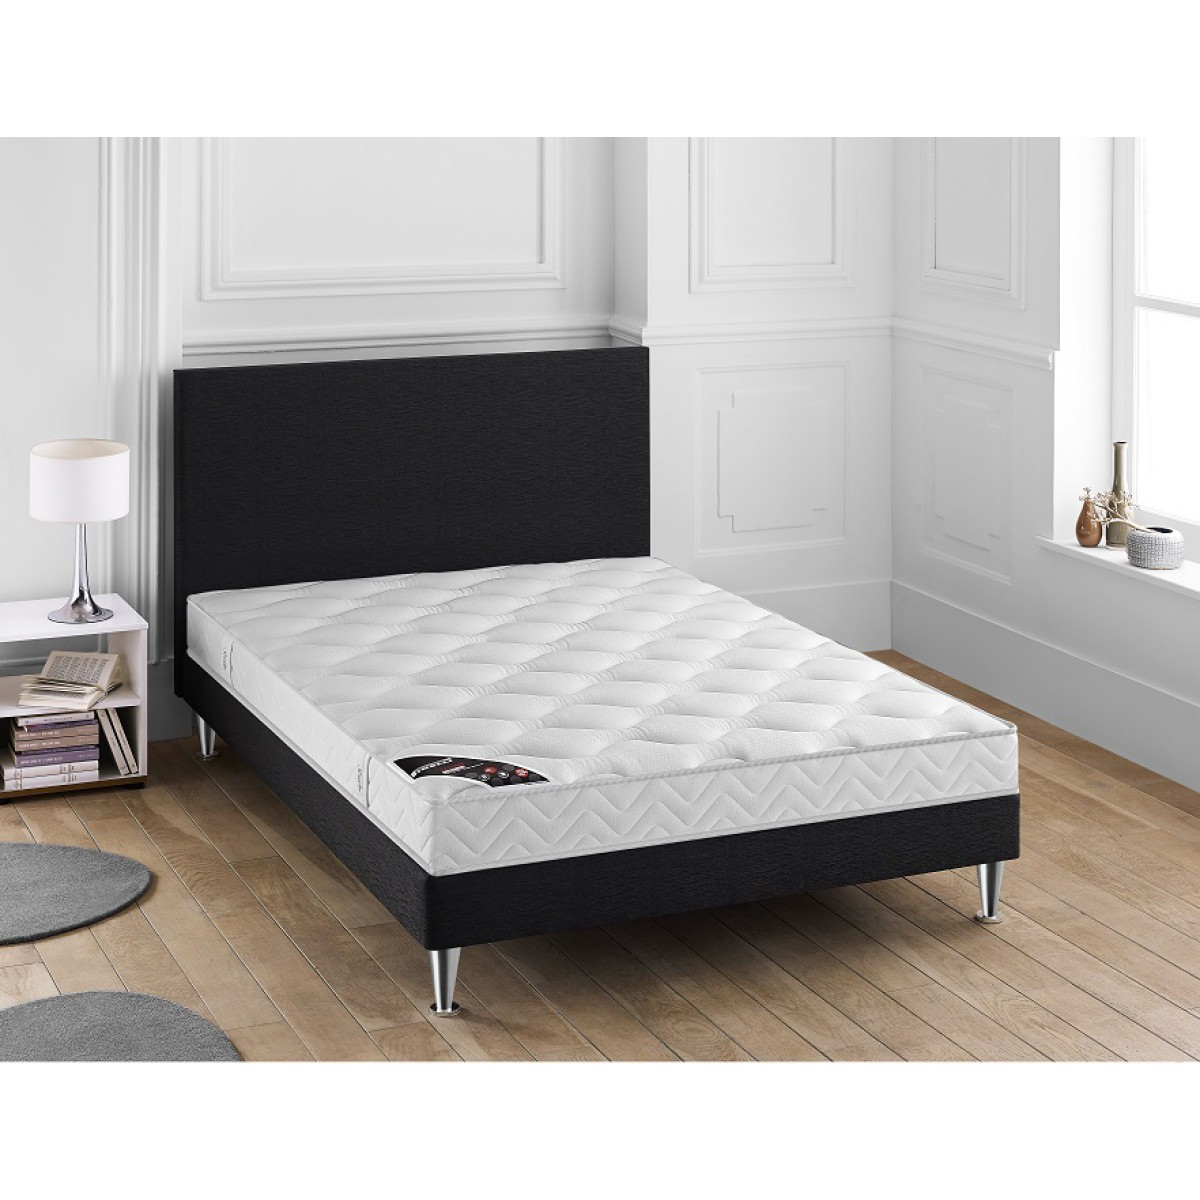 matelas pirelli latex avis. Black Bedroom Furniture Sets. Home Design Ideas